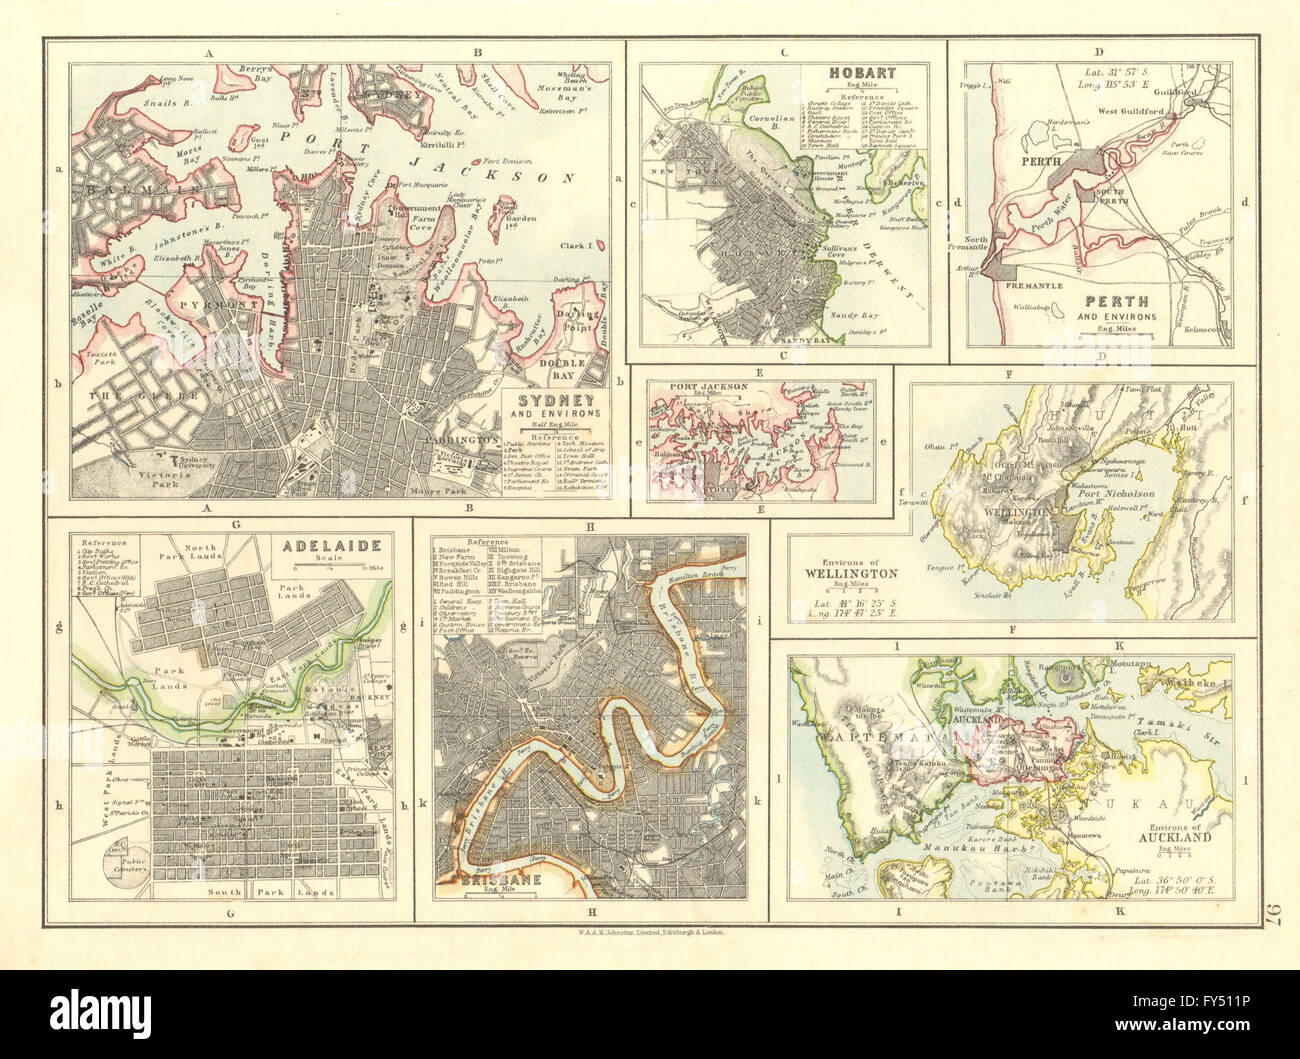 australia nz cities sydney hobart perth adelaide brisbane auckland 1906 map